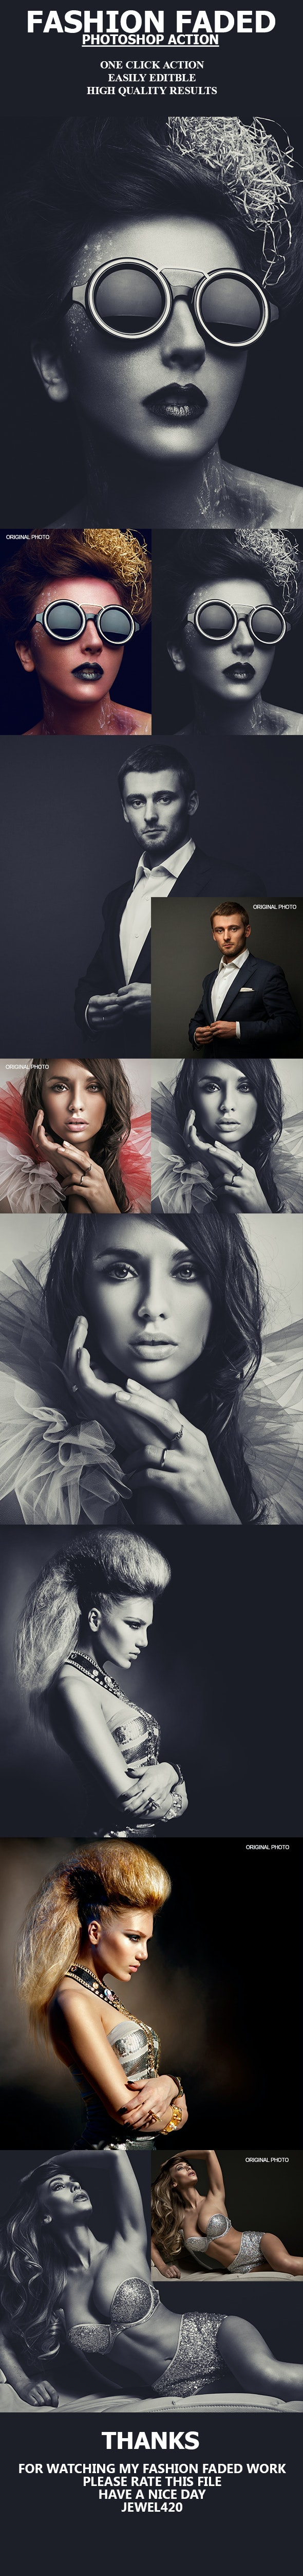 Fashion Faded Photoshop Action - Photo Effects Actions